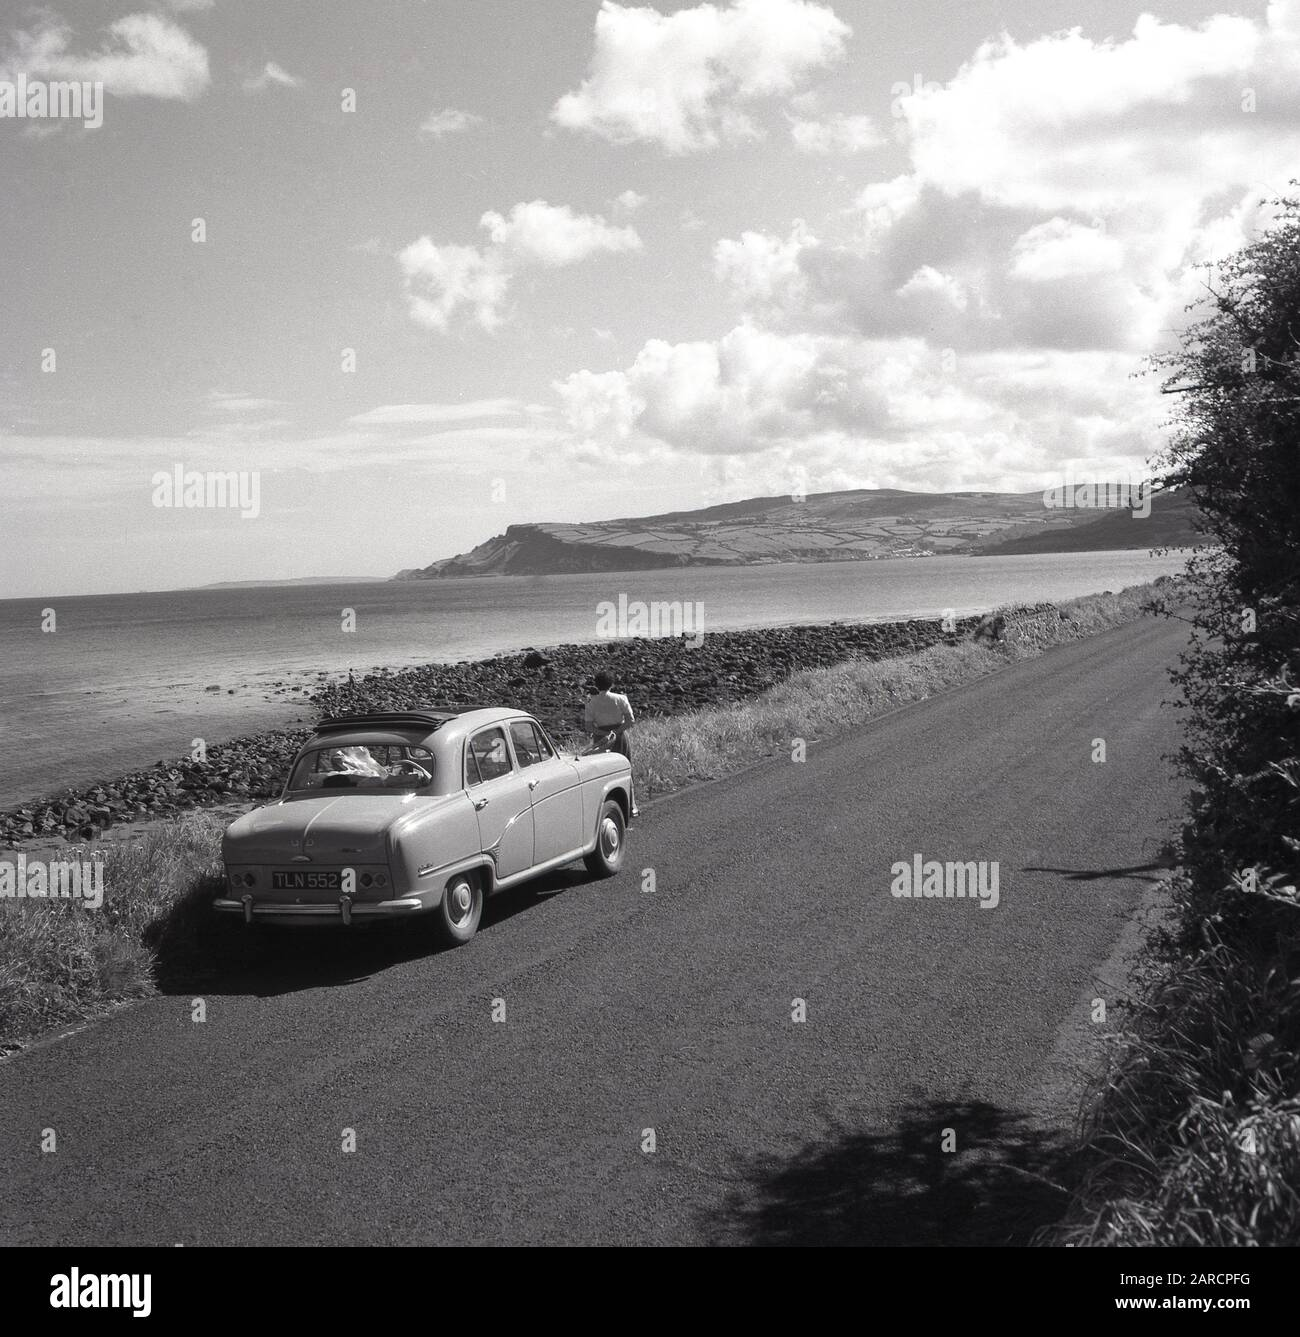 1950s, historical, a lady traveller standing by her motor car of the era on a quiet road looking over a bay on the Causeway coastal route, with the Antrim mountains in the distance, Co. Antirm, Northern Ireland, UK. The driving route, known as one of the greatest drives on earth, is famed for its spectacular setting overlooking the Antrim coast. Stock Photo